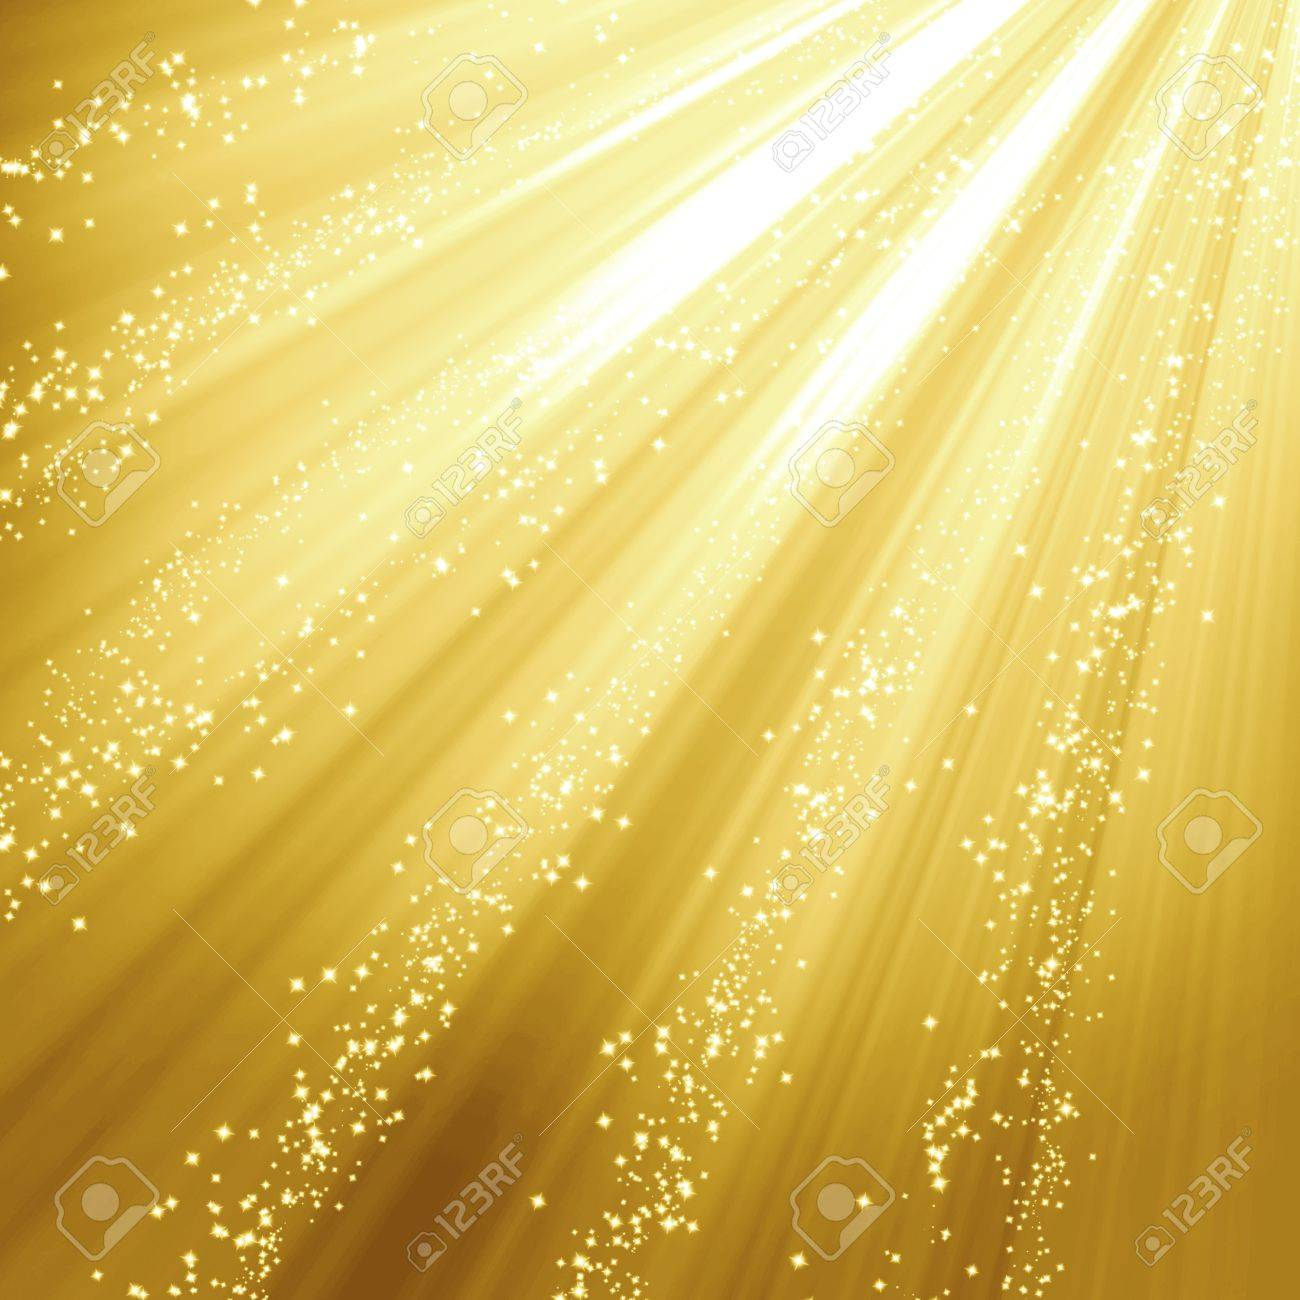 Golden christmas or festive background with soft highlights and  shades Stock Photo - 15140074